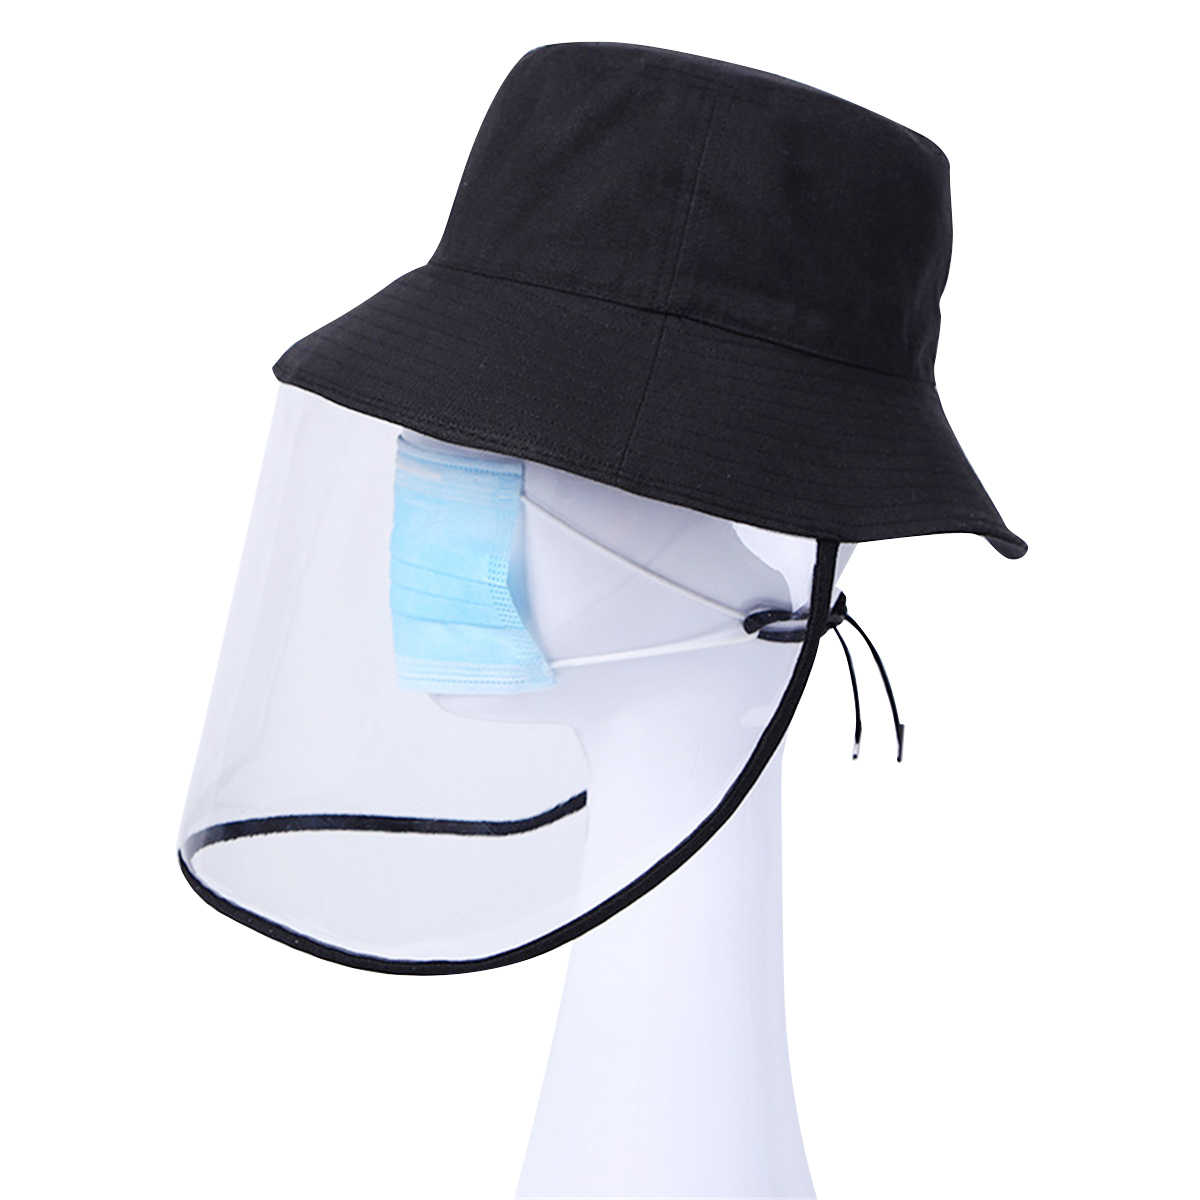 Rinder Protective Transparent Cap Bucket Sun Hat Full-face Safety Face Shield Protective Bucket Hat Removable Hat for Men and Women Outdoor Fisherman Hat